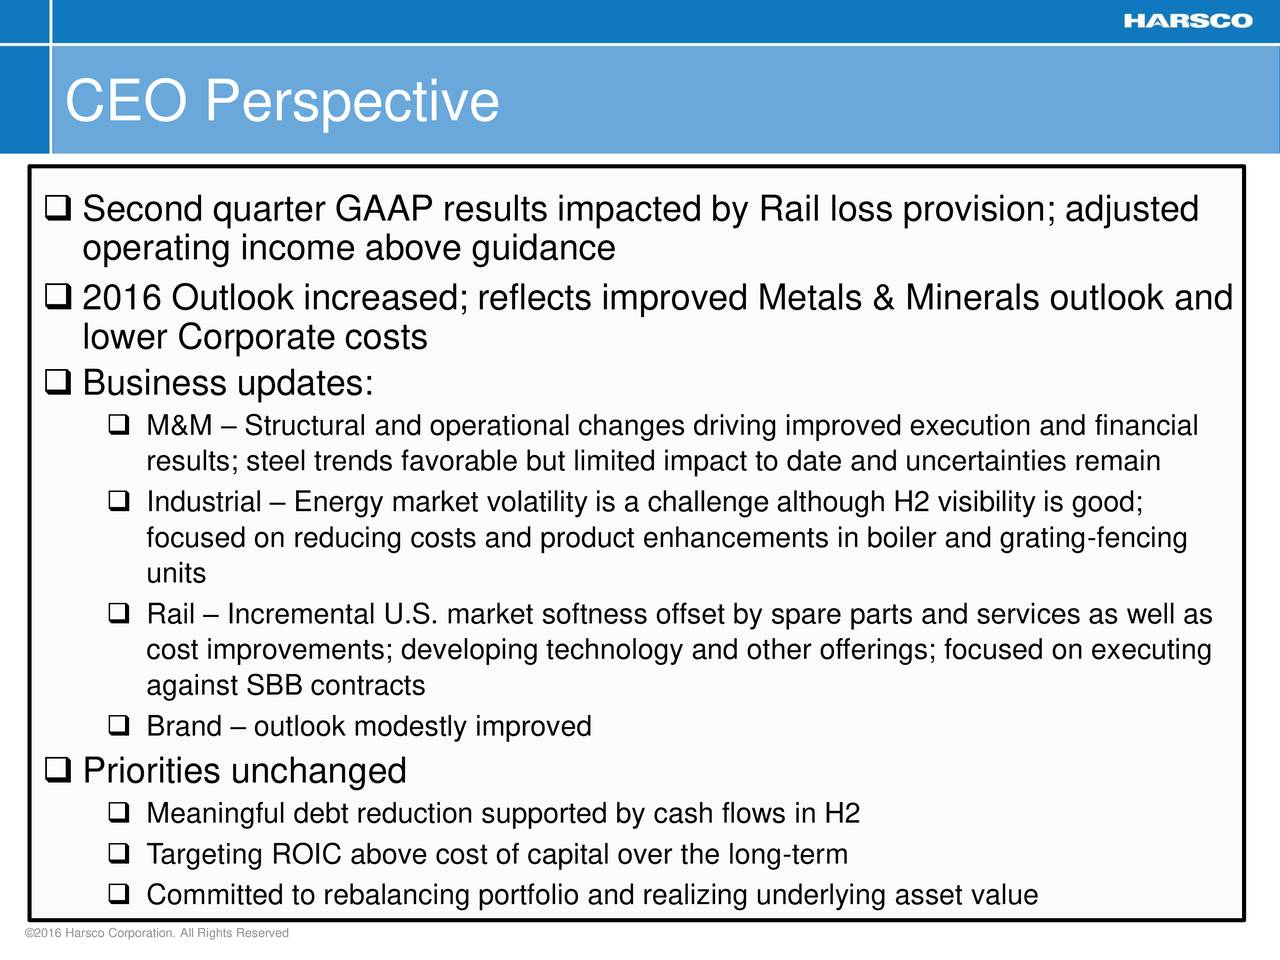 Second quarter GAAP results impacted by Rail loss provision; adjusted operating income above guidance 2016 Outlook increased; reflects improved Metals & Minerals outlook and lower Corporate costs Business updates: M&M  Structural and operational changes driving improved execution and financial results; steel trends favorable but limited impact to date and uncertainties remain Industrial  Energy market volatility is a challenge although H2 visibility is good; focused on reducing costs and product enhancements in boiler and grating-fencing units Rail  Incremental U.S. market softness offset by spare parts and services as well as cost improvements; developing technology and other offerings; focused on executing against SBB contracts Brand  outlook modestly improved Priorities unchanged Meaningful debt reduction supported by cash flows in H2 Targeting ROIC above cost of capital over the long-term Committed to rebalancing portfolio and realizing underlying asset value 2016 Harsco Corporation. All Rights Reserved 3